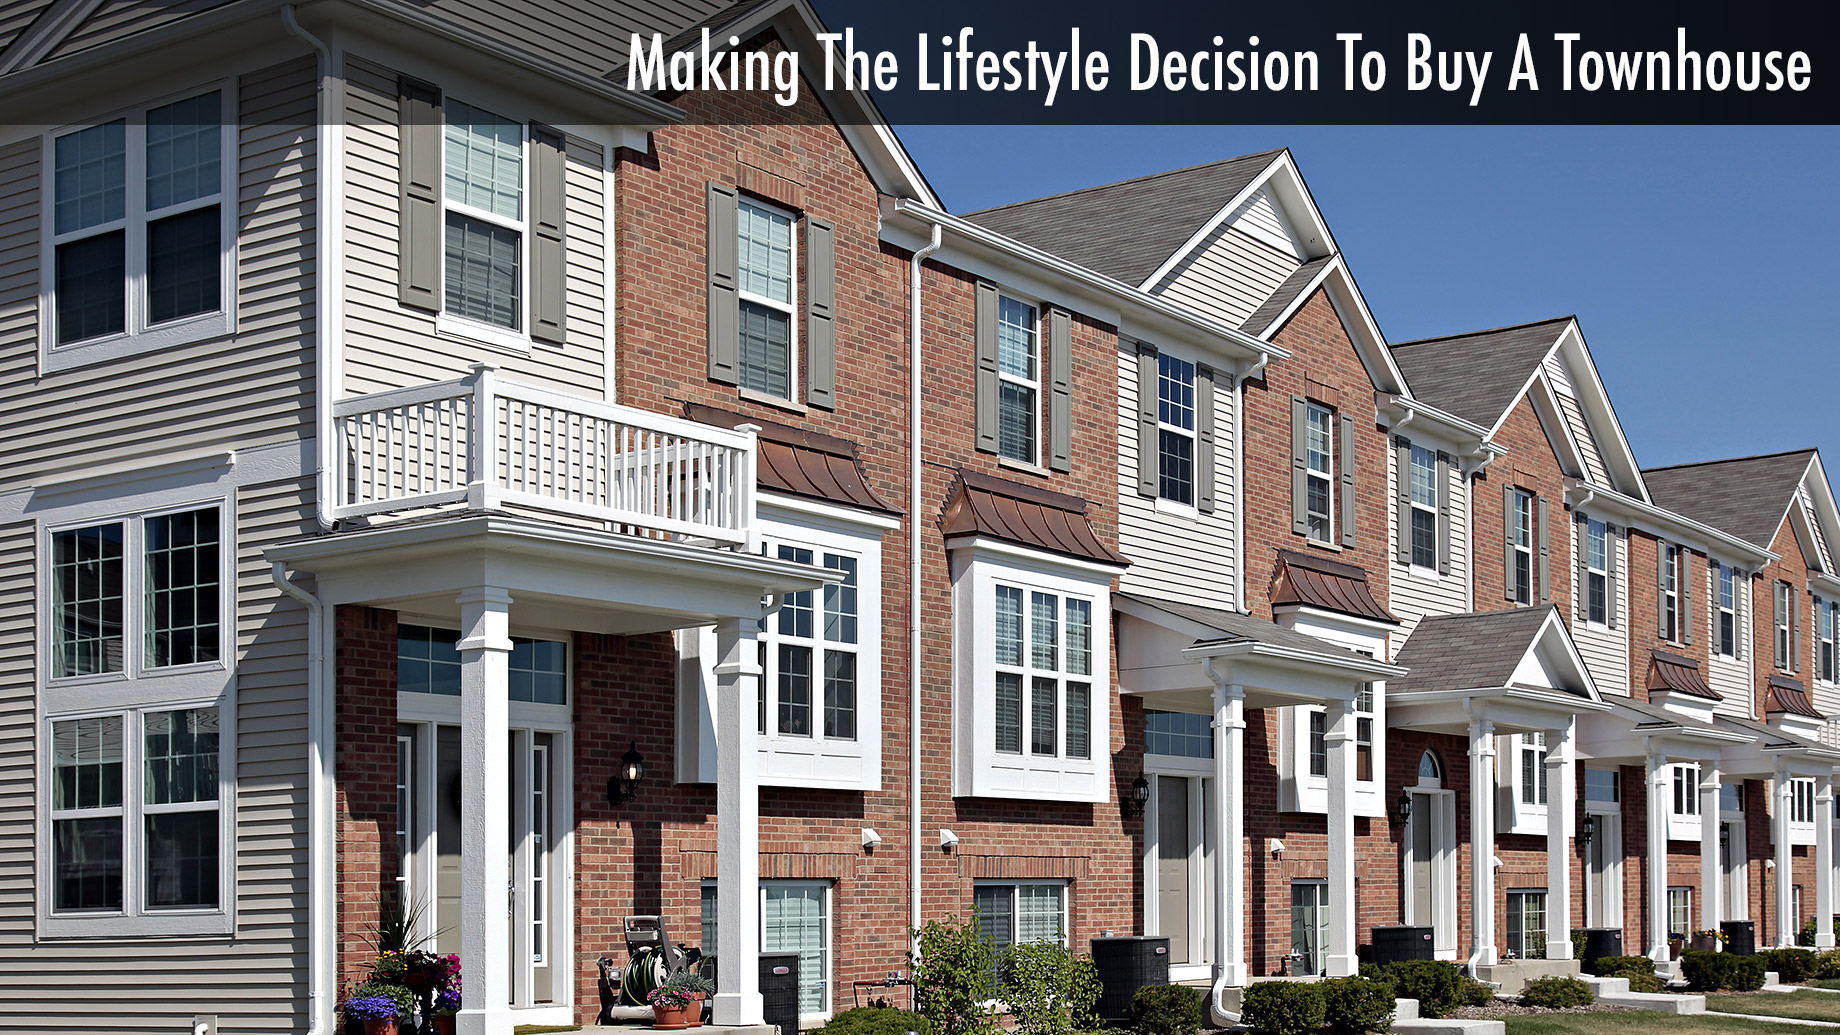 Making The Lifestyle Decision To Buy A Townhouse